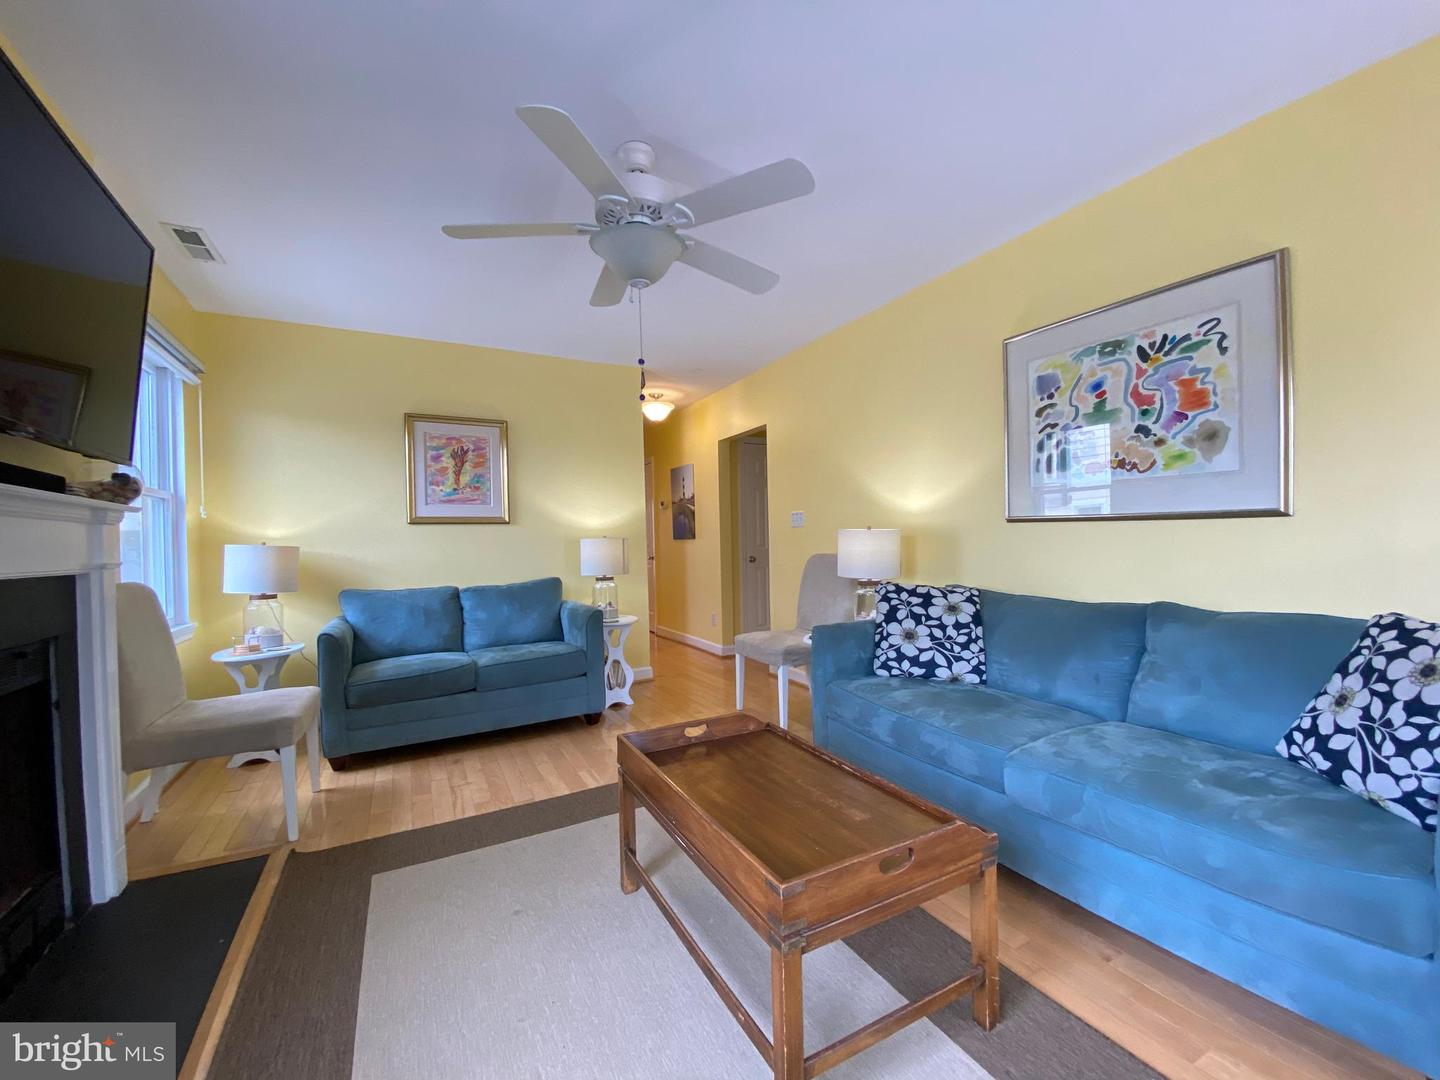 DESU161746-304145716643-2020-05-30-11-15-25 116 Hollywood St | Bethany Beach, DE Real Estate For Sale | MLS# Desu161746  - Ocean Atlantic